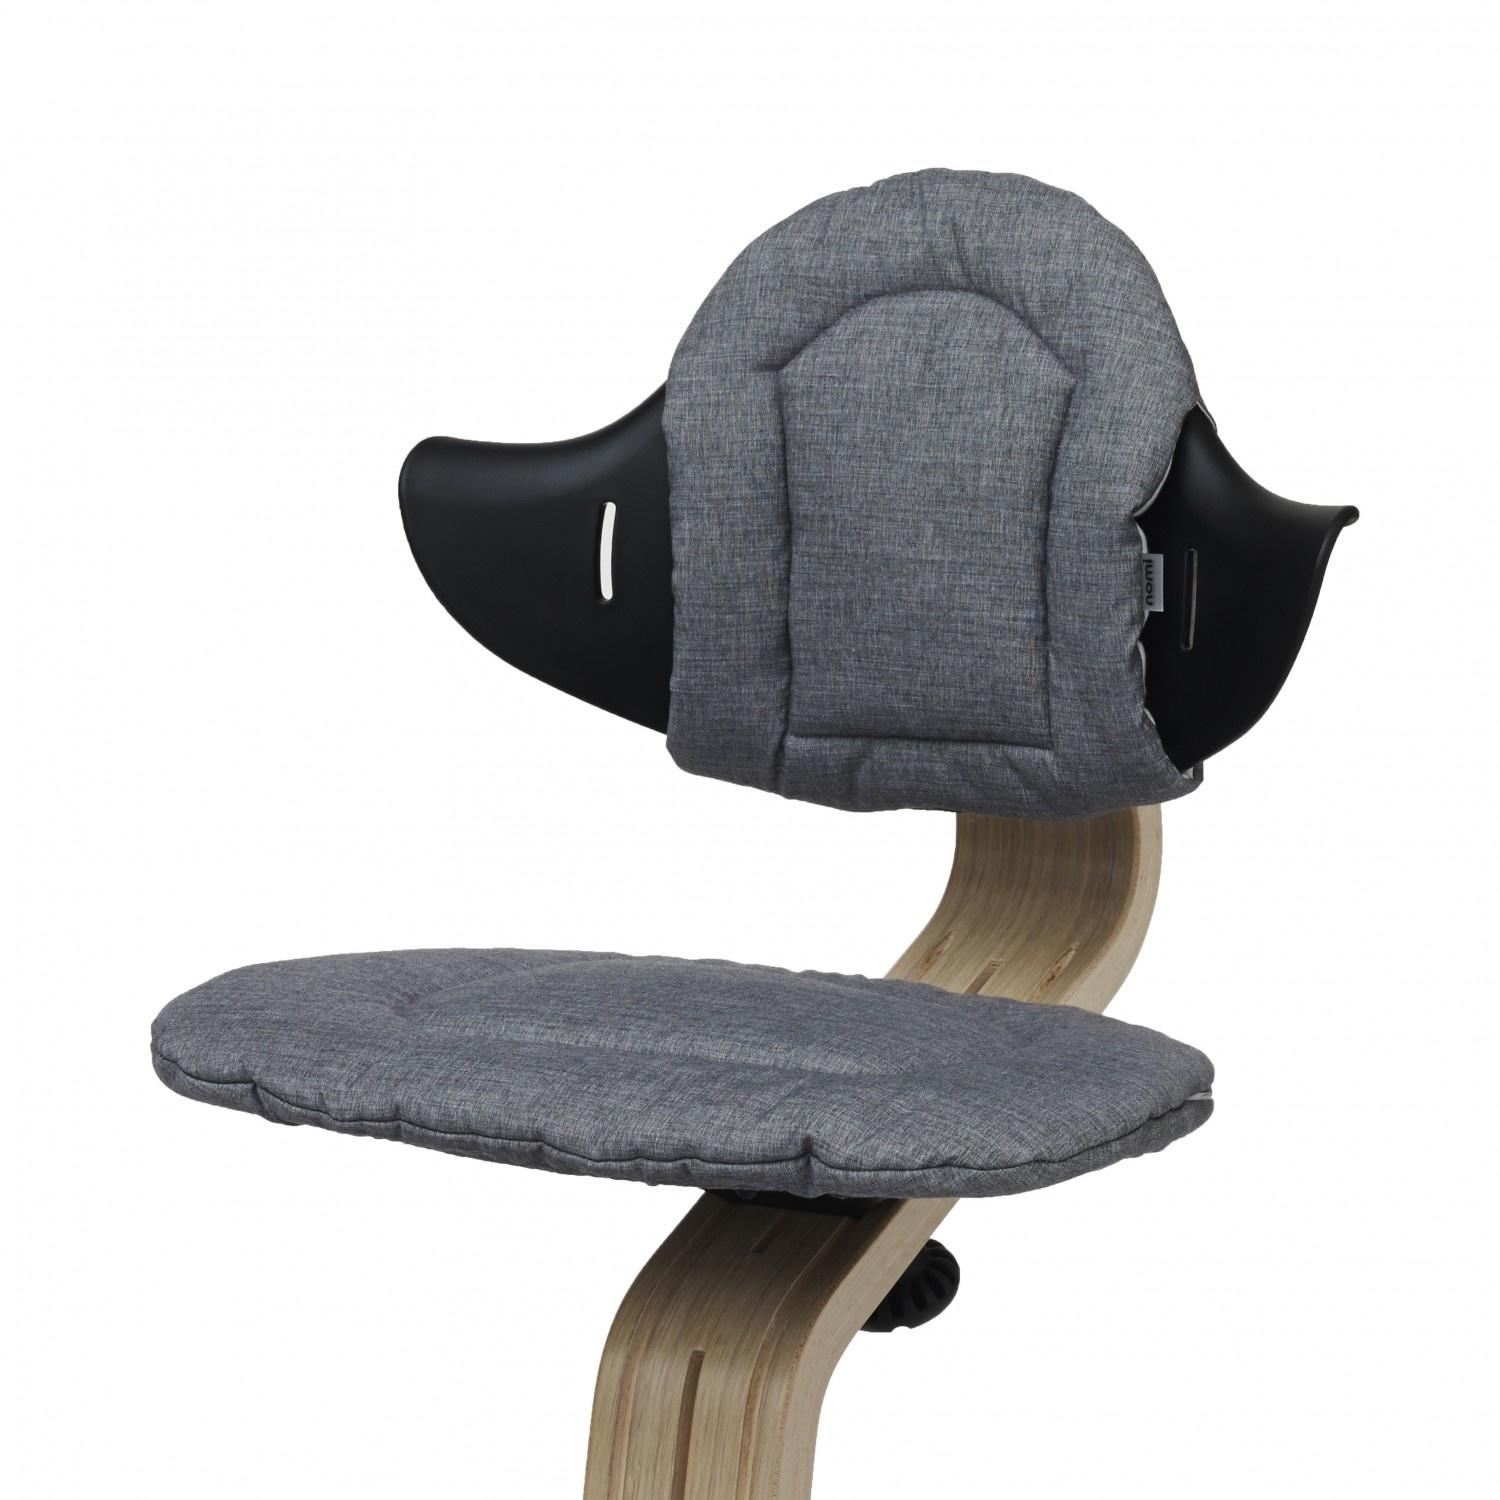 Nomi Nomi Highchair cushion kussen Dark grey / sand